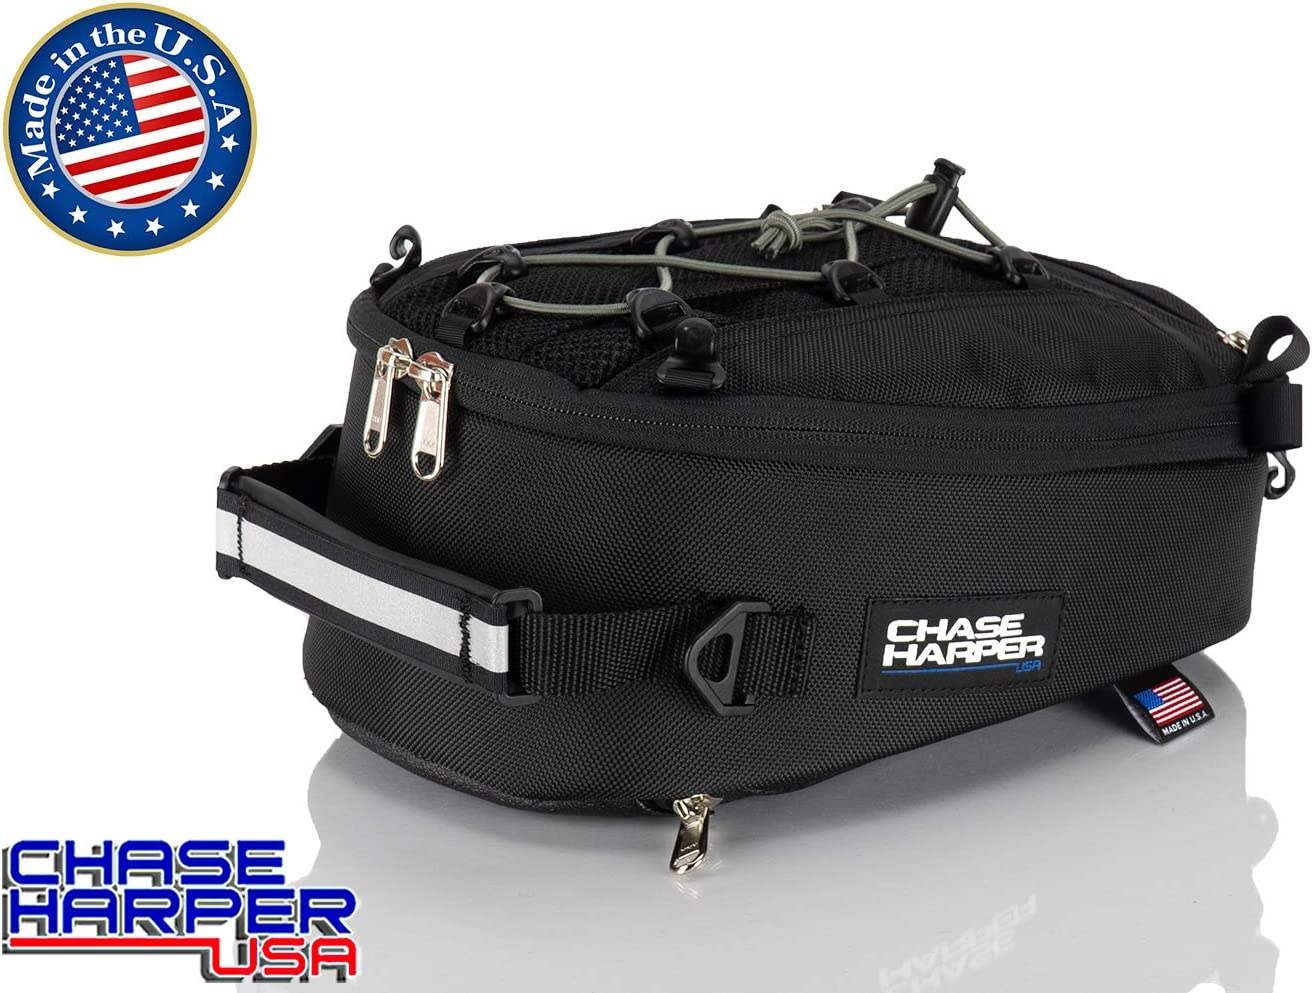 Chase Harper 450 USA Tail Bag